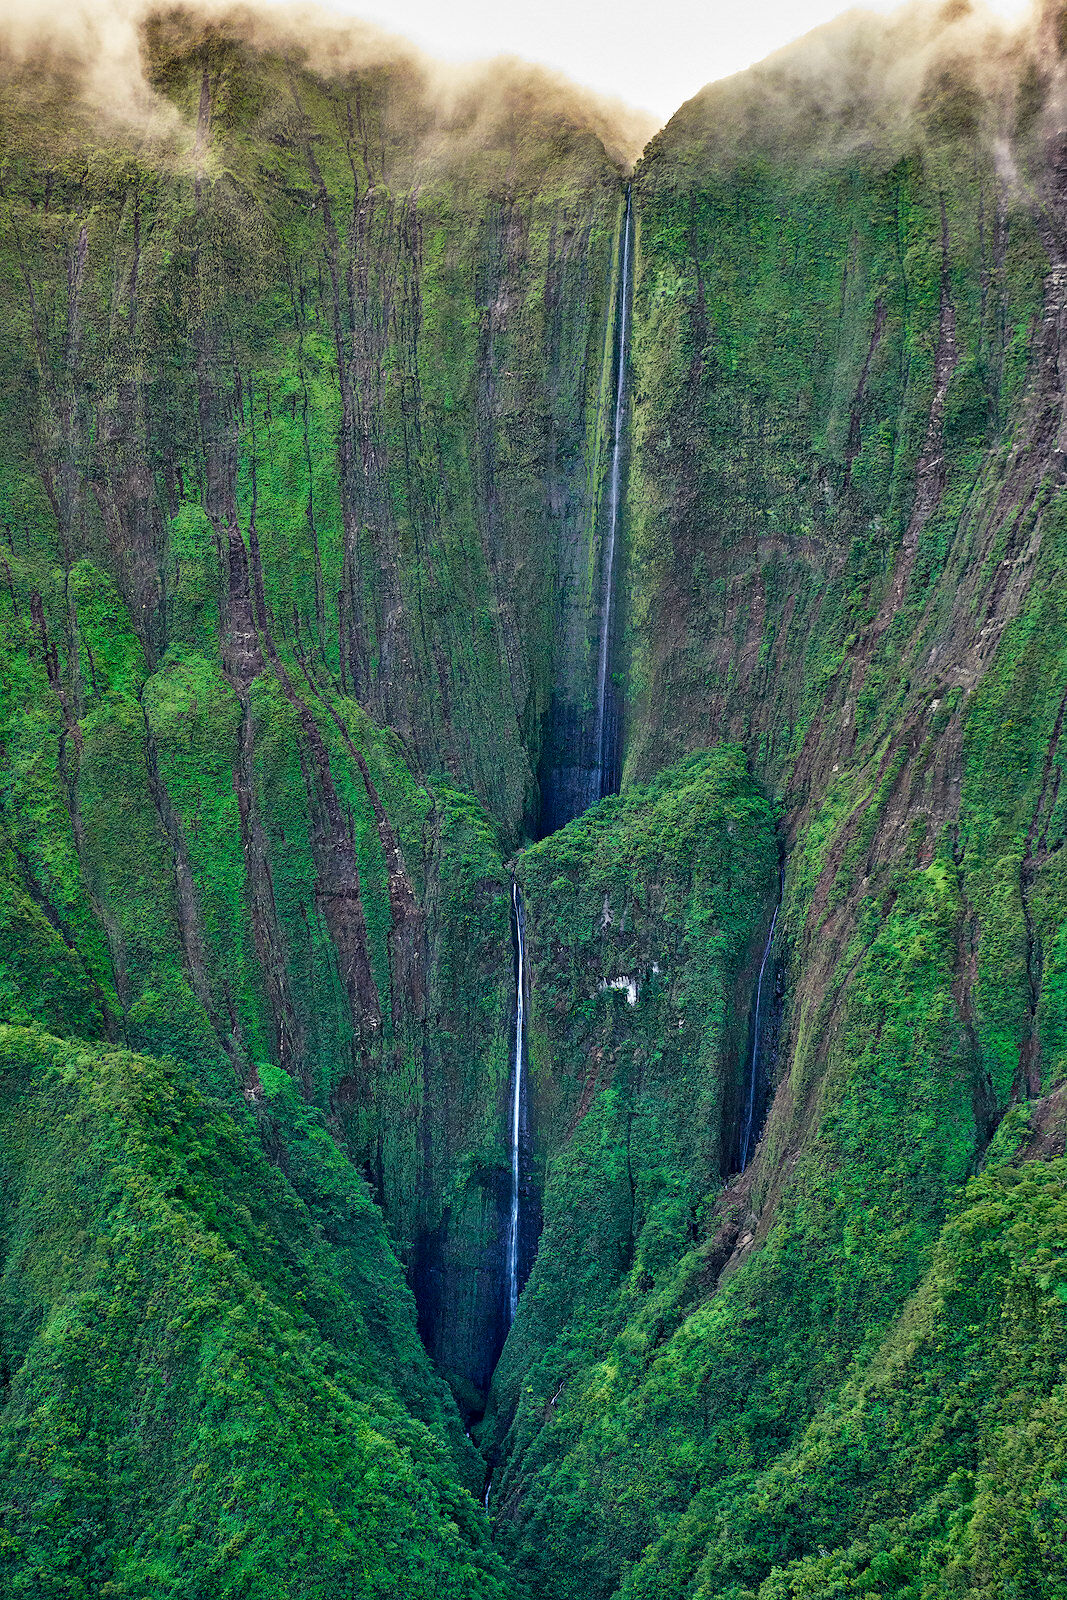 aerial view from a Helicopter of Honokohau Falls which is the tallest waterfall on the island of Maui